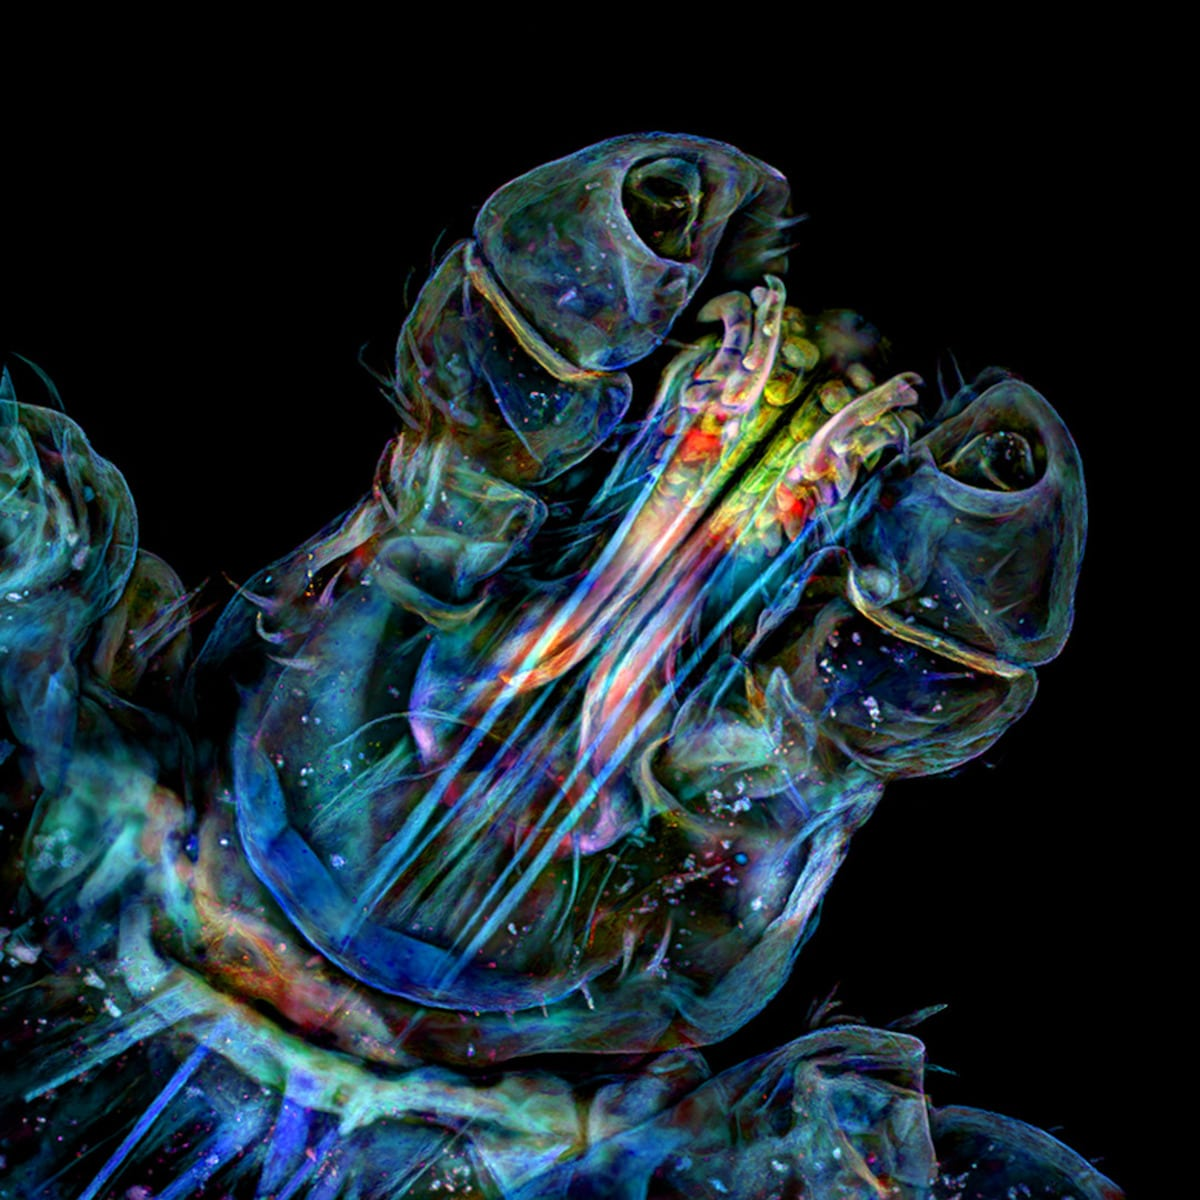 Confocal Image of the Head of a Tick